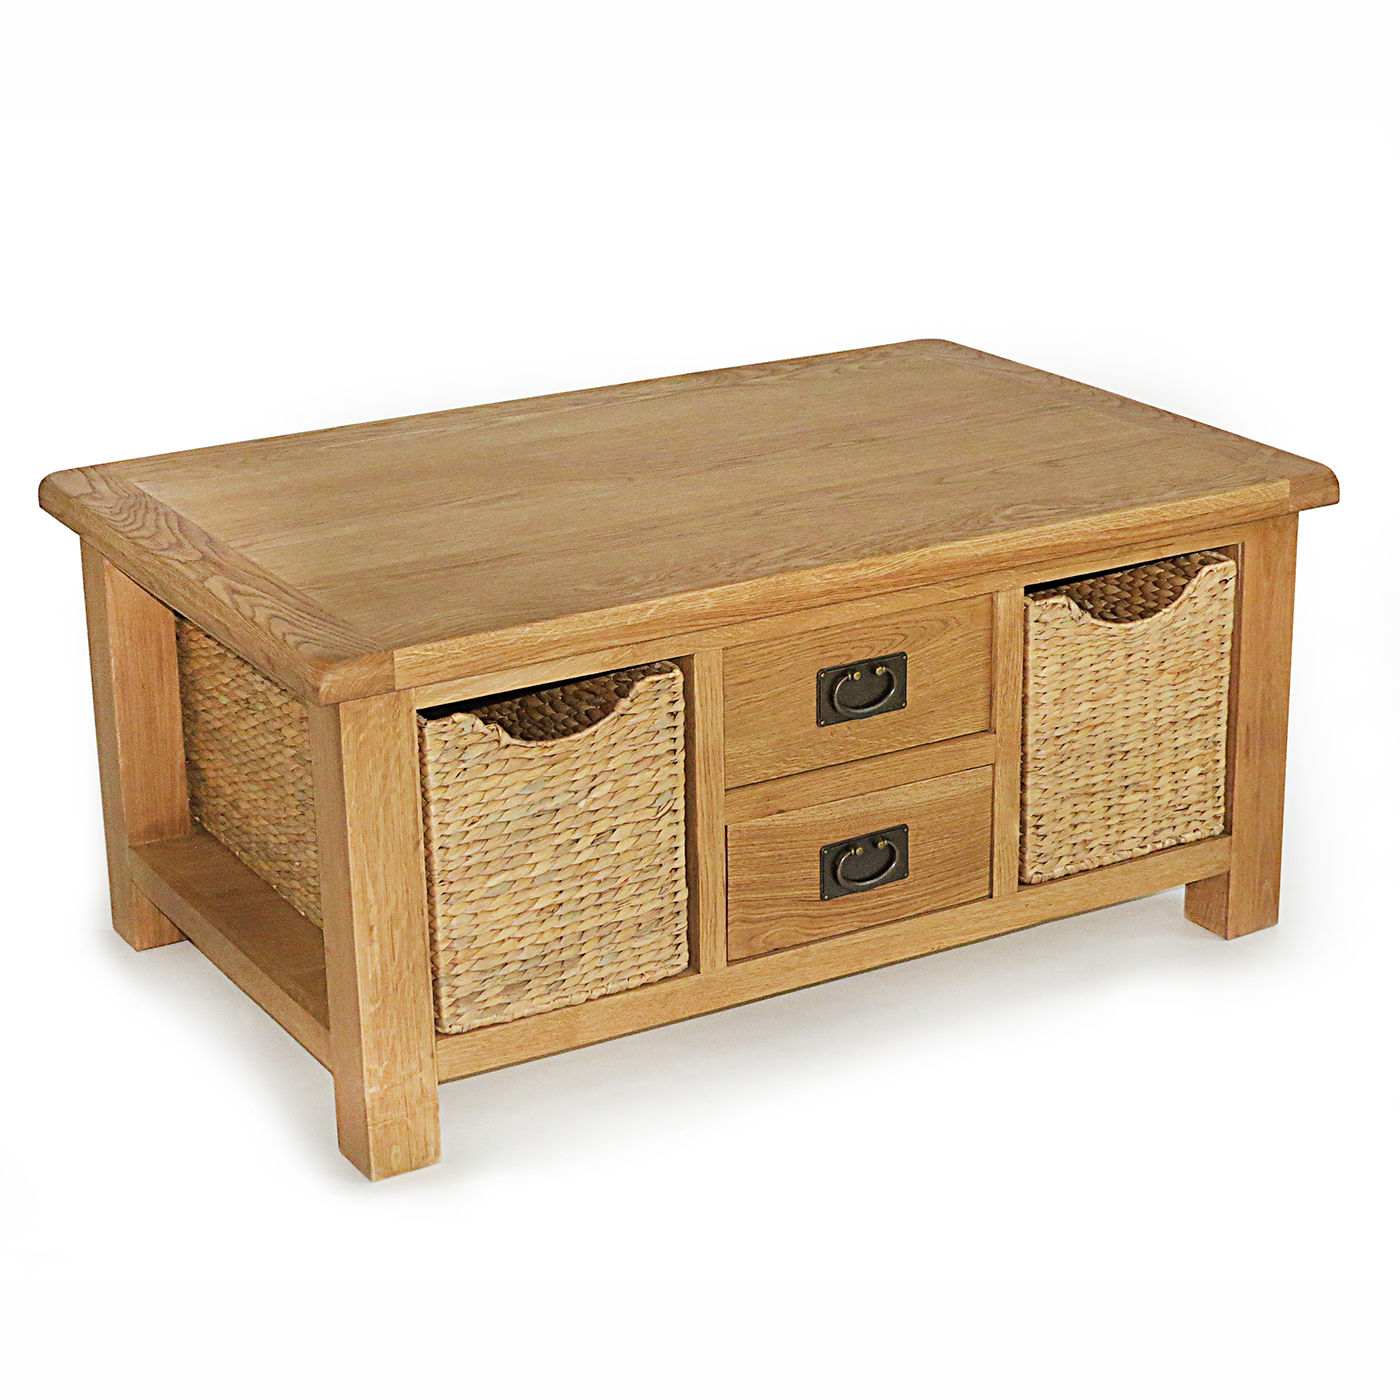 Large coffee table with drawer and baskets